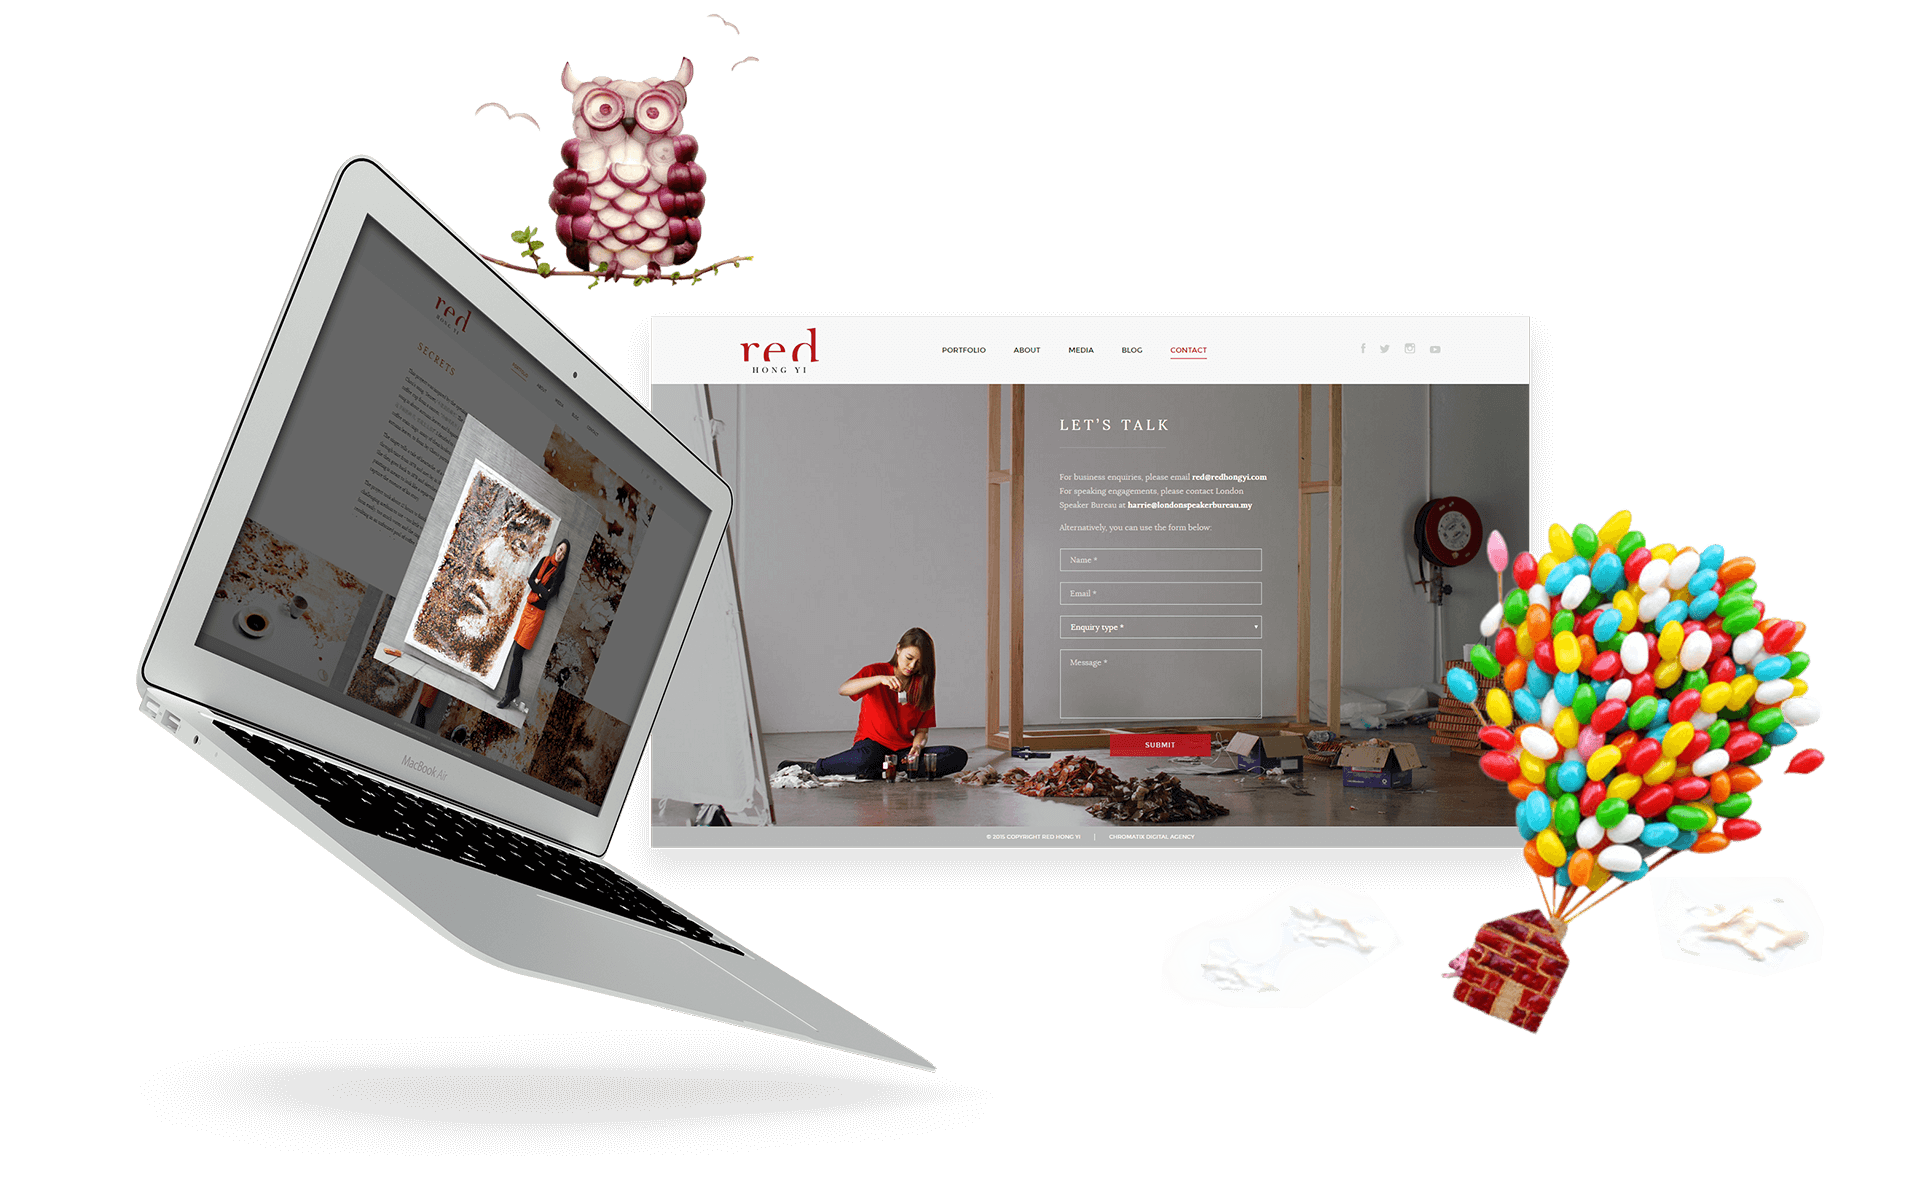 Laptop and Desktop View of Red Hong Yi Website Showcasing Contact Page and Artwork